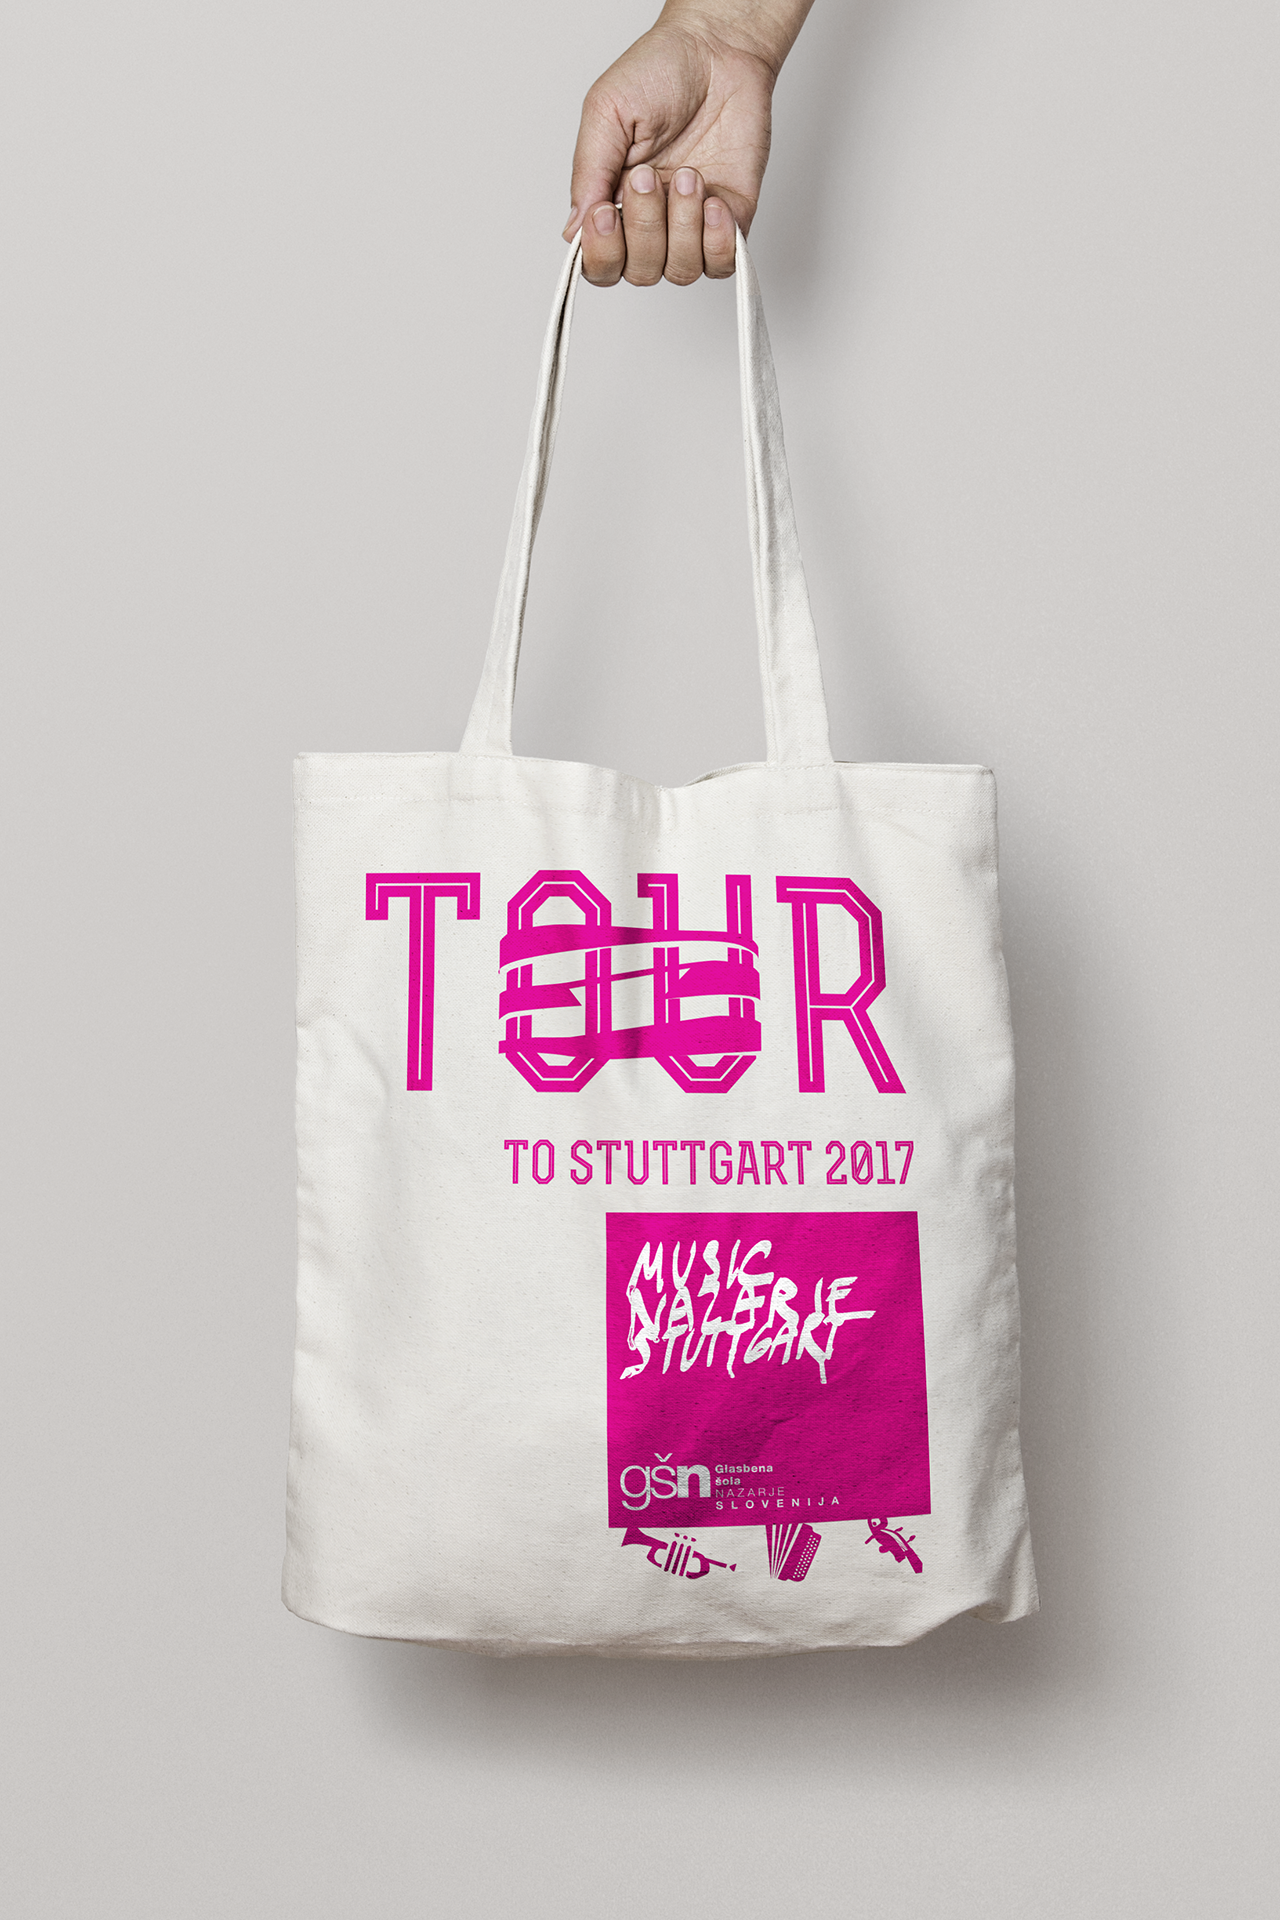 gs_nazarje__tour_to_stuttgart_marinsek_ma-ma_bag